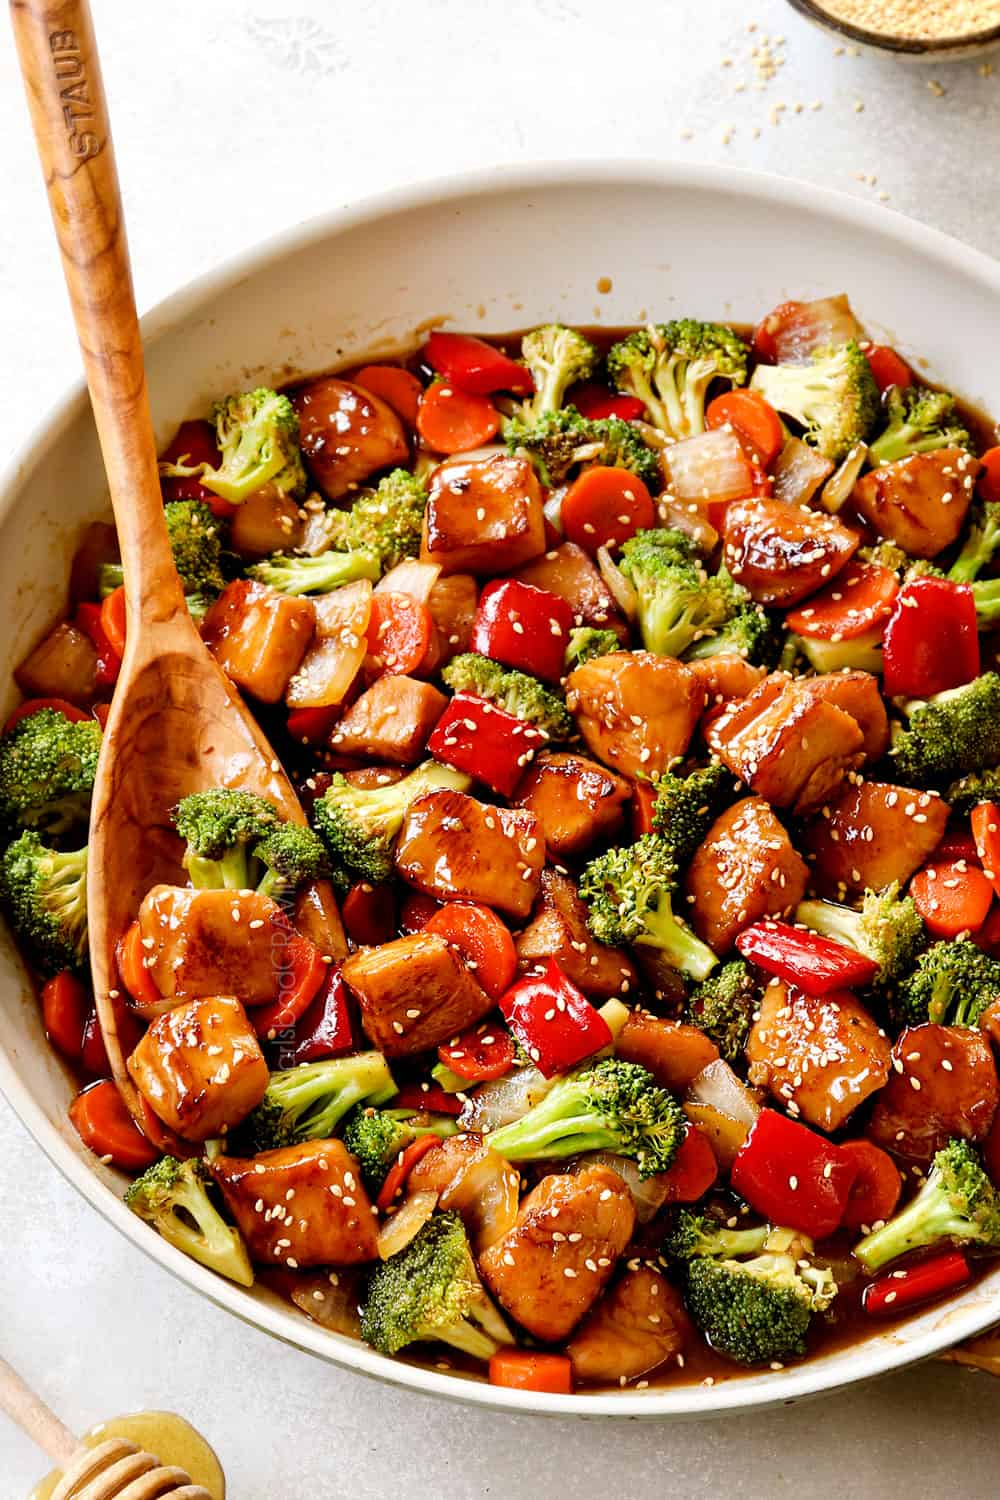 showing how to serve honey garlic chicken stir fry by garnishing with green sesame seeds in a skillet